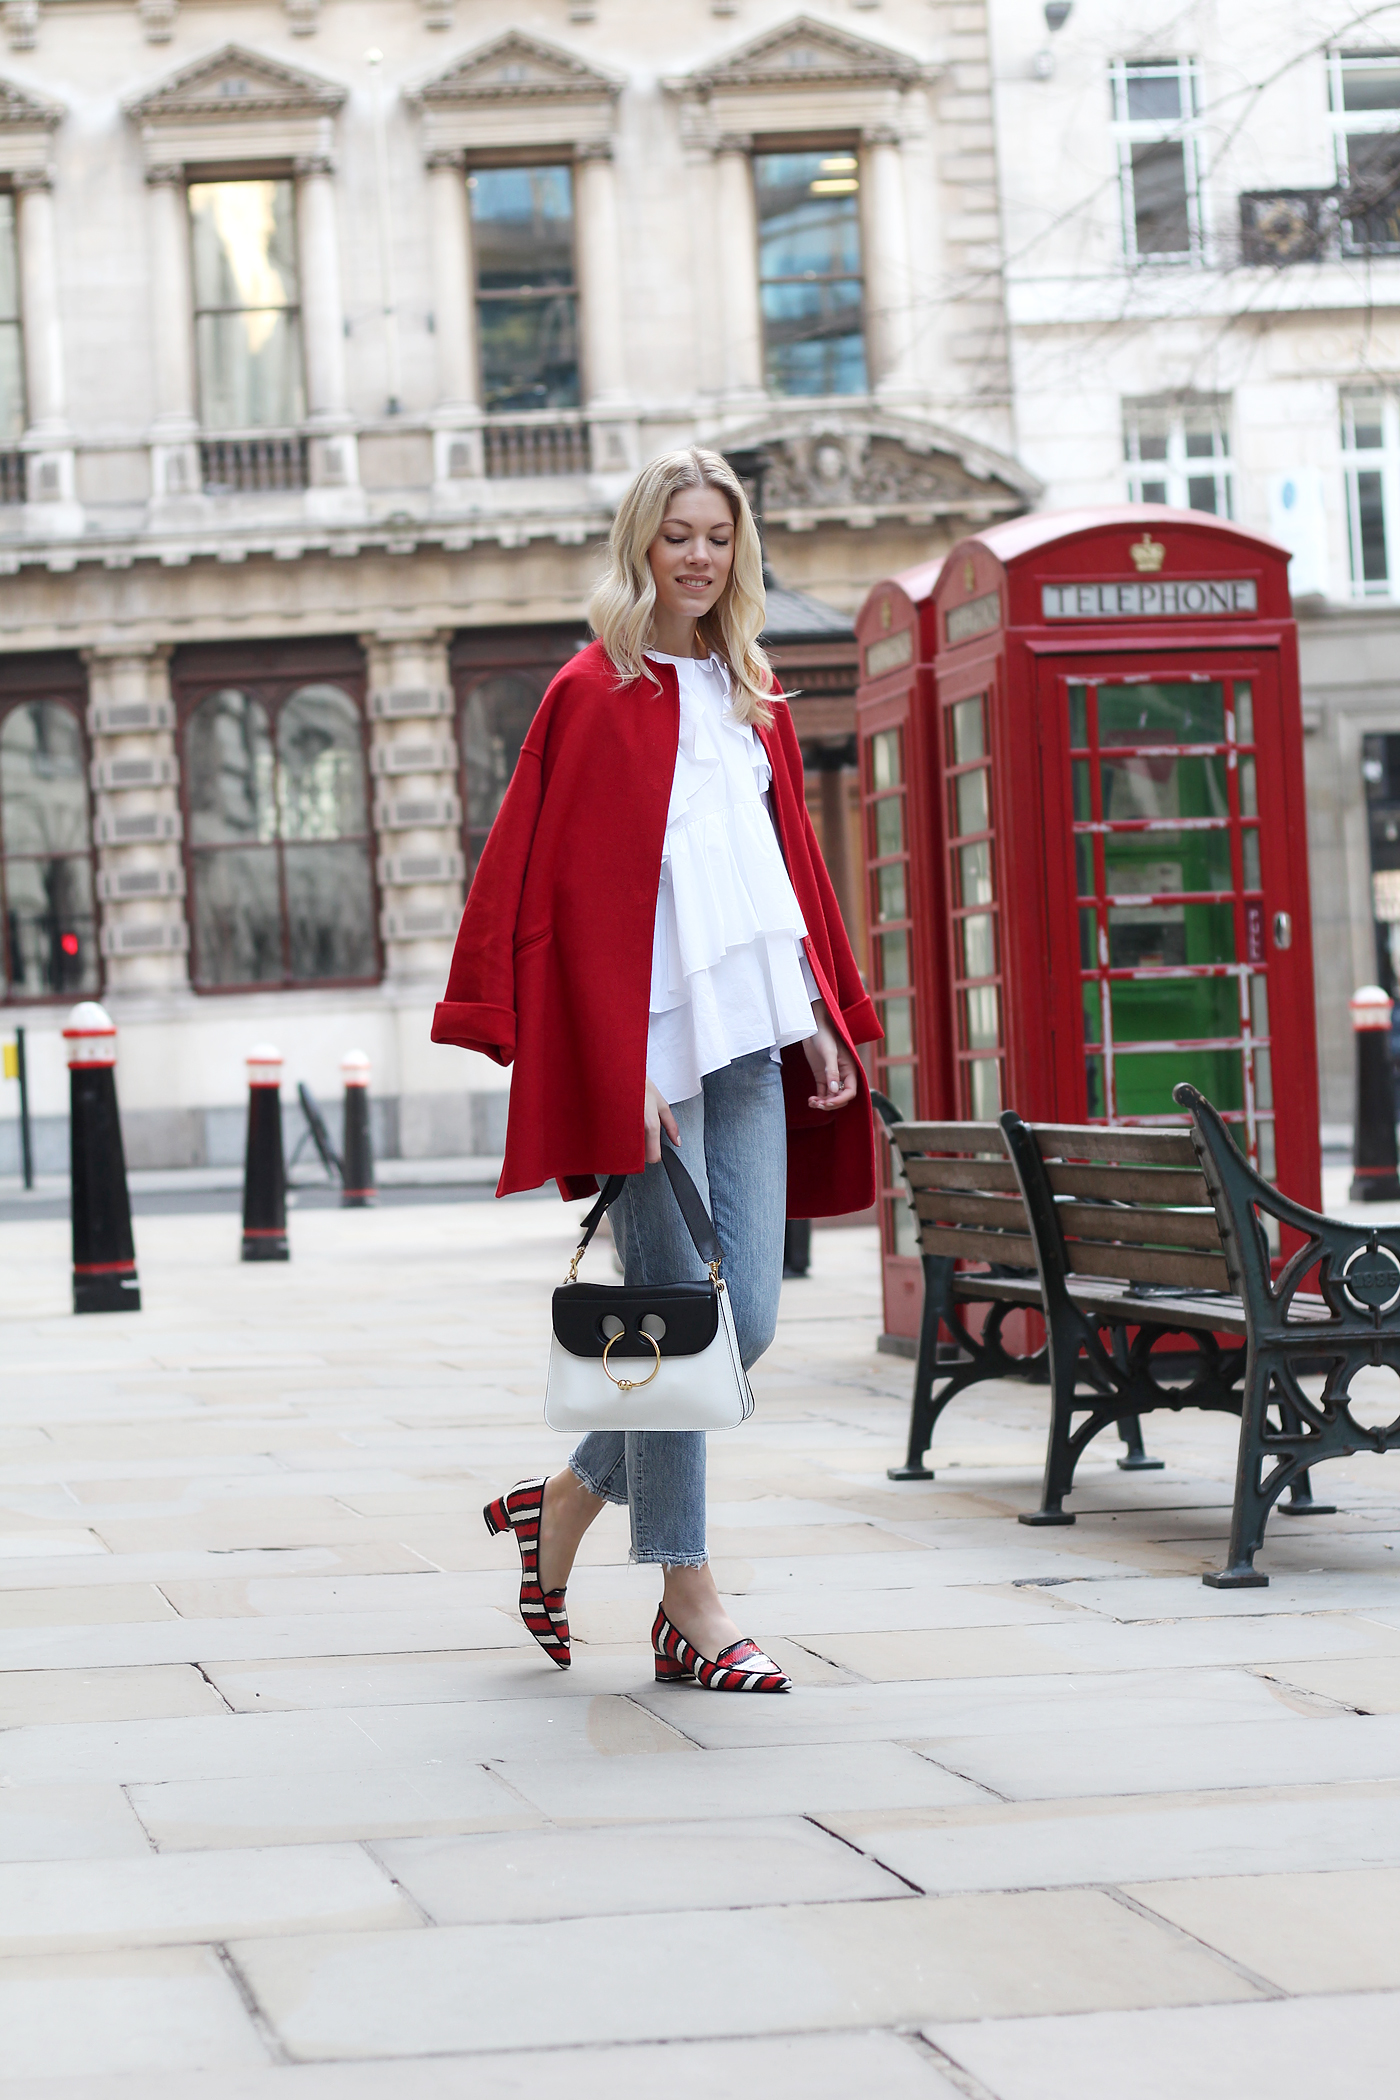 somehappyshoes_London_fashion_week_red_coat_Ganni_shoes_jeans2